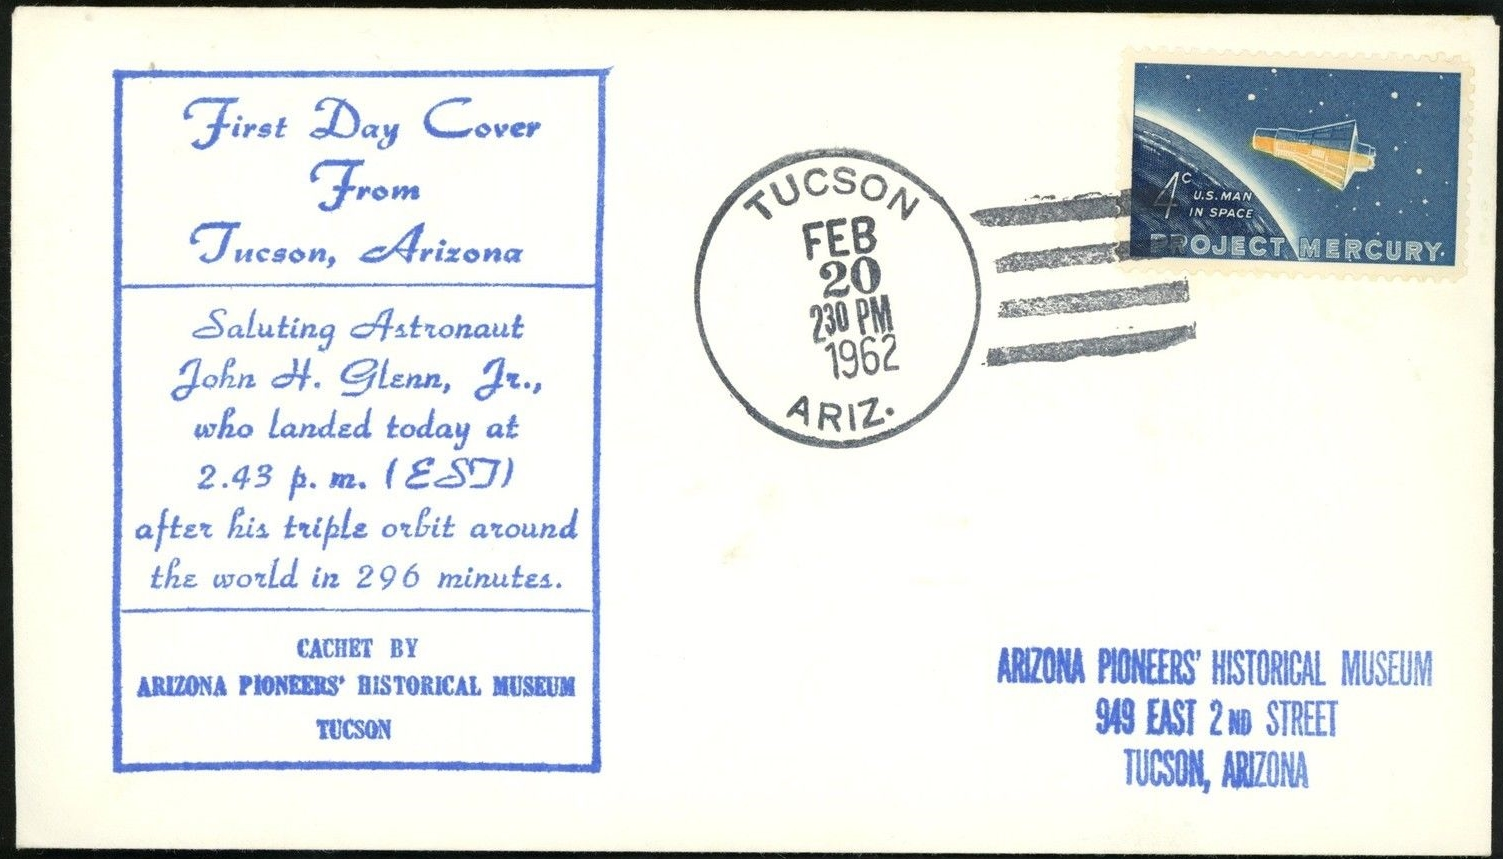 United States - Scott #1193 (1962) first day cover - Tucson, Arizona